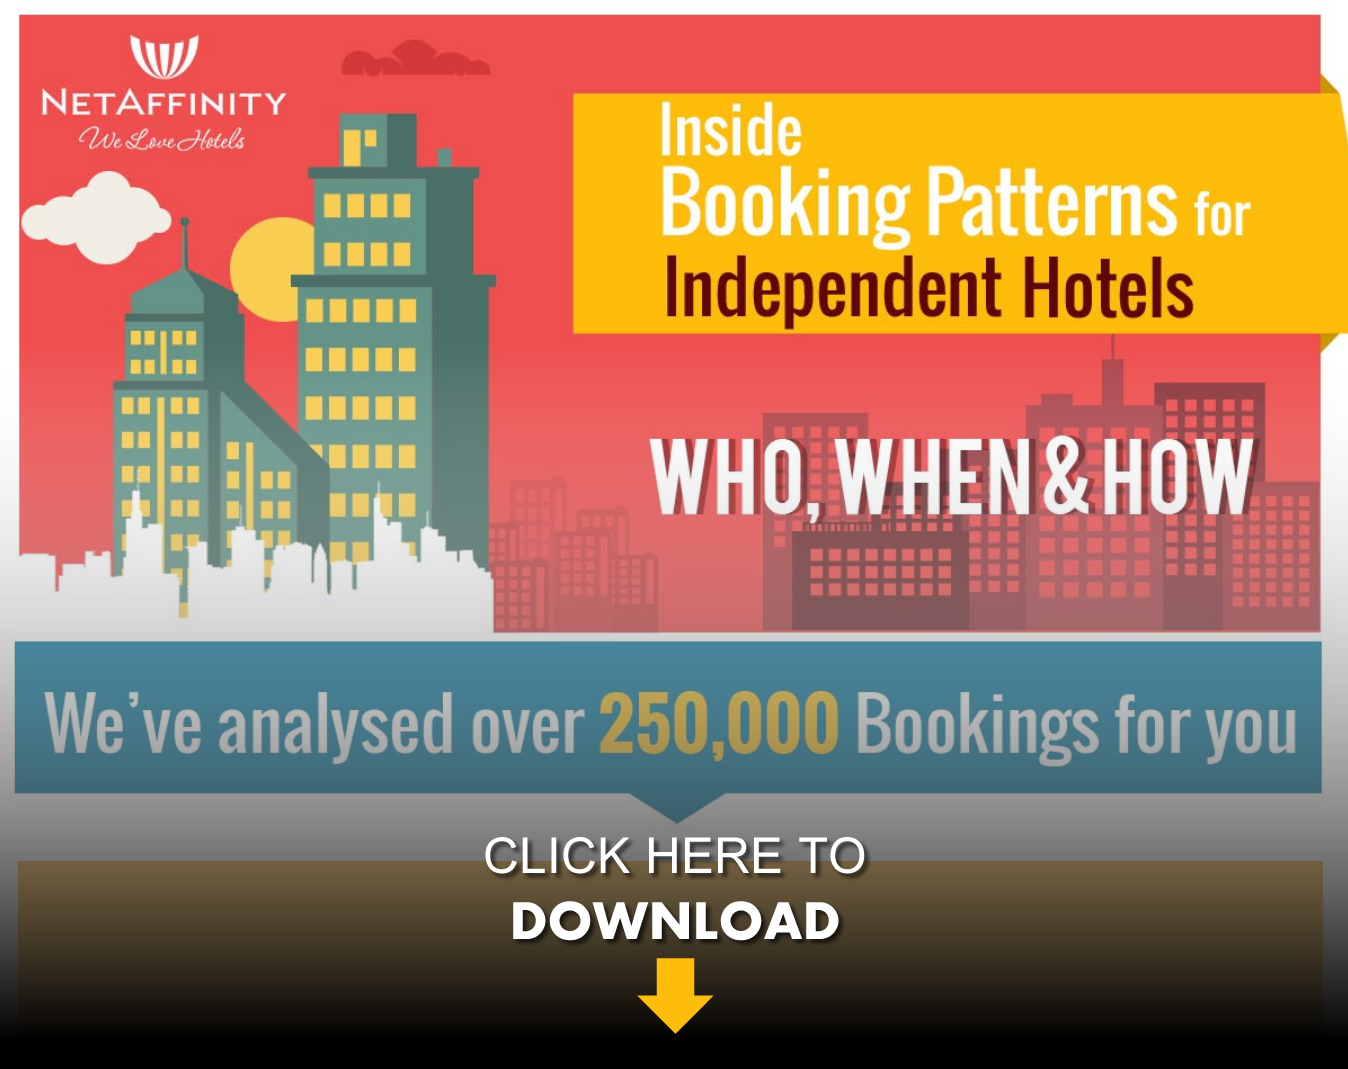 booking-patterns-download-image.png